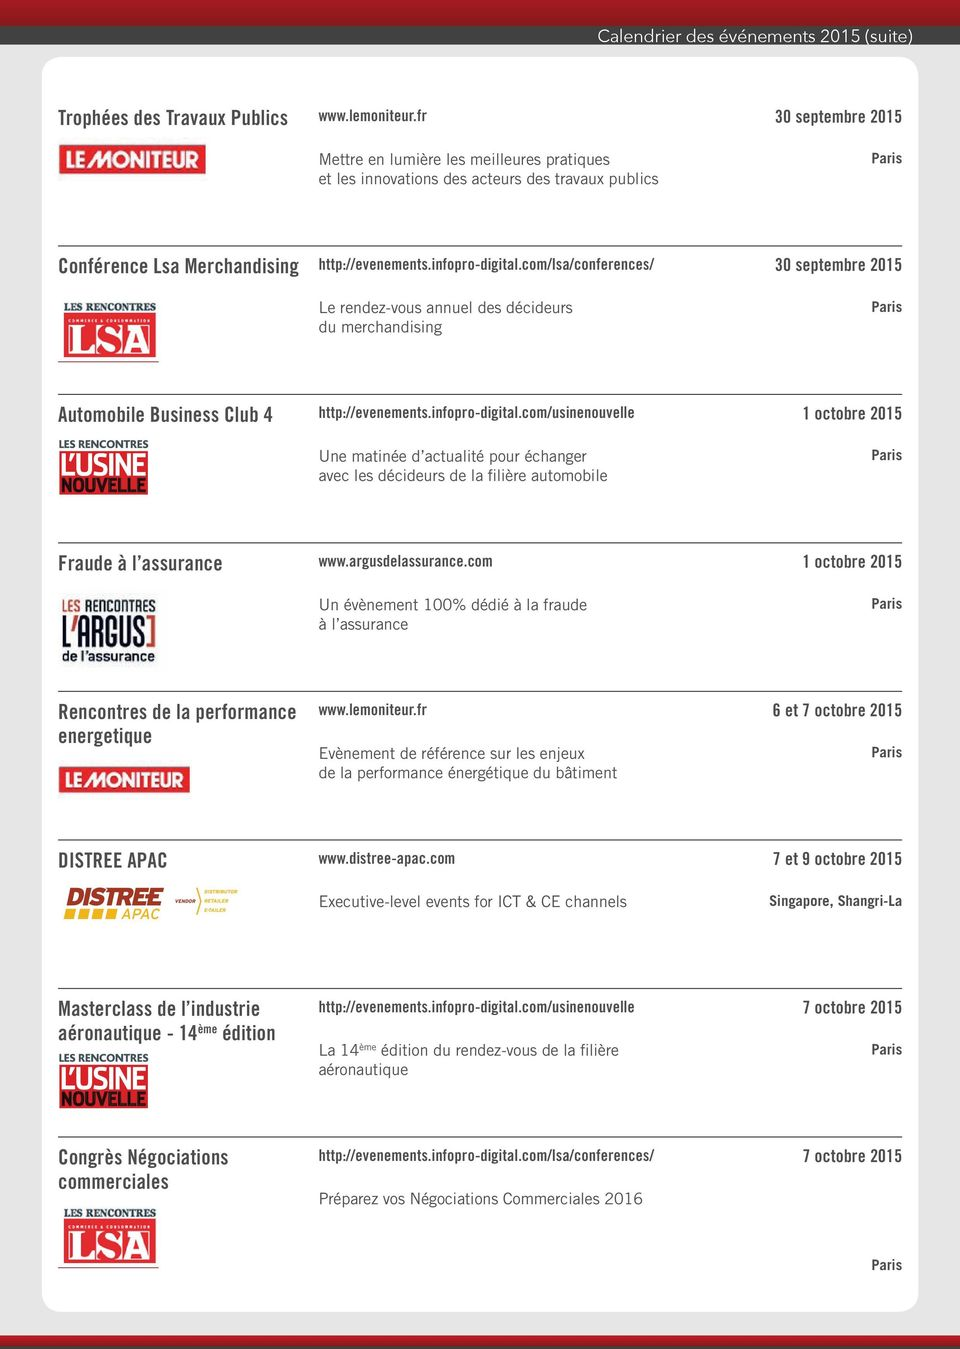 com/lsa/conferences/ Le rendez-vous annuel des décideurs du merchandising 30 septembre 2015 Automobile Business Club 4 Une matinée d actualité pour échanger avec les décideurs de la filière